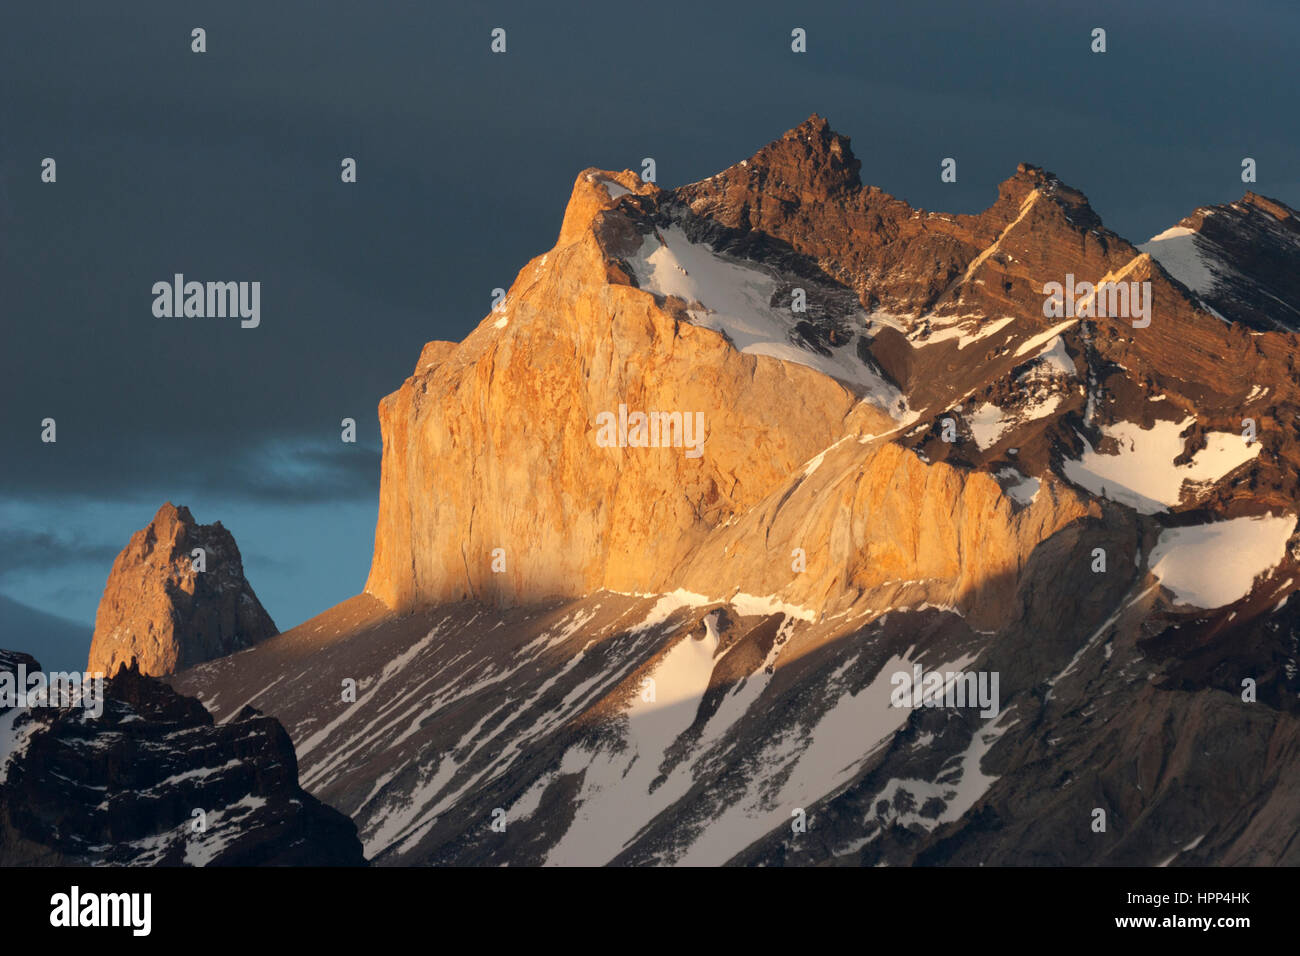 Los Cuernos del Paine, Torres del Paine National Park at sunrise - Stock Image